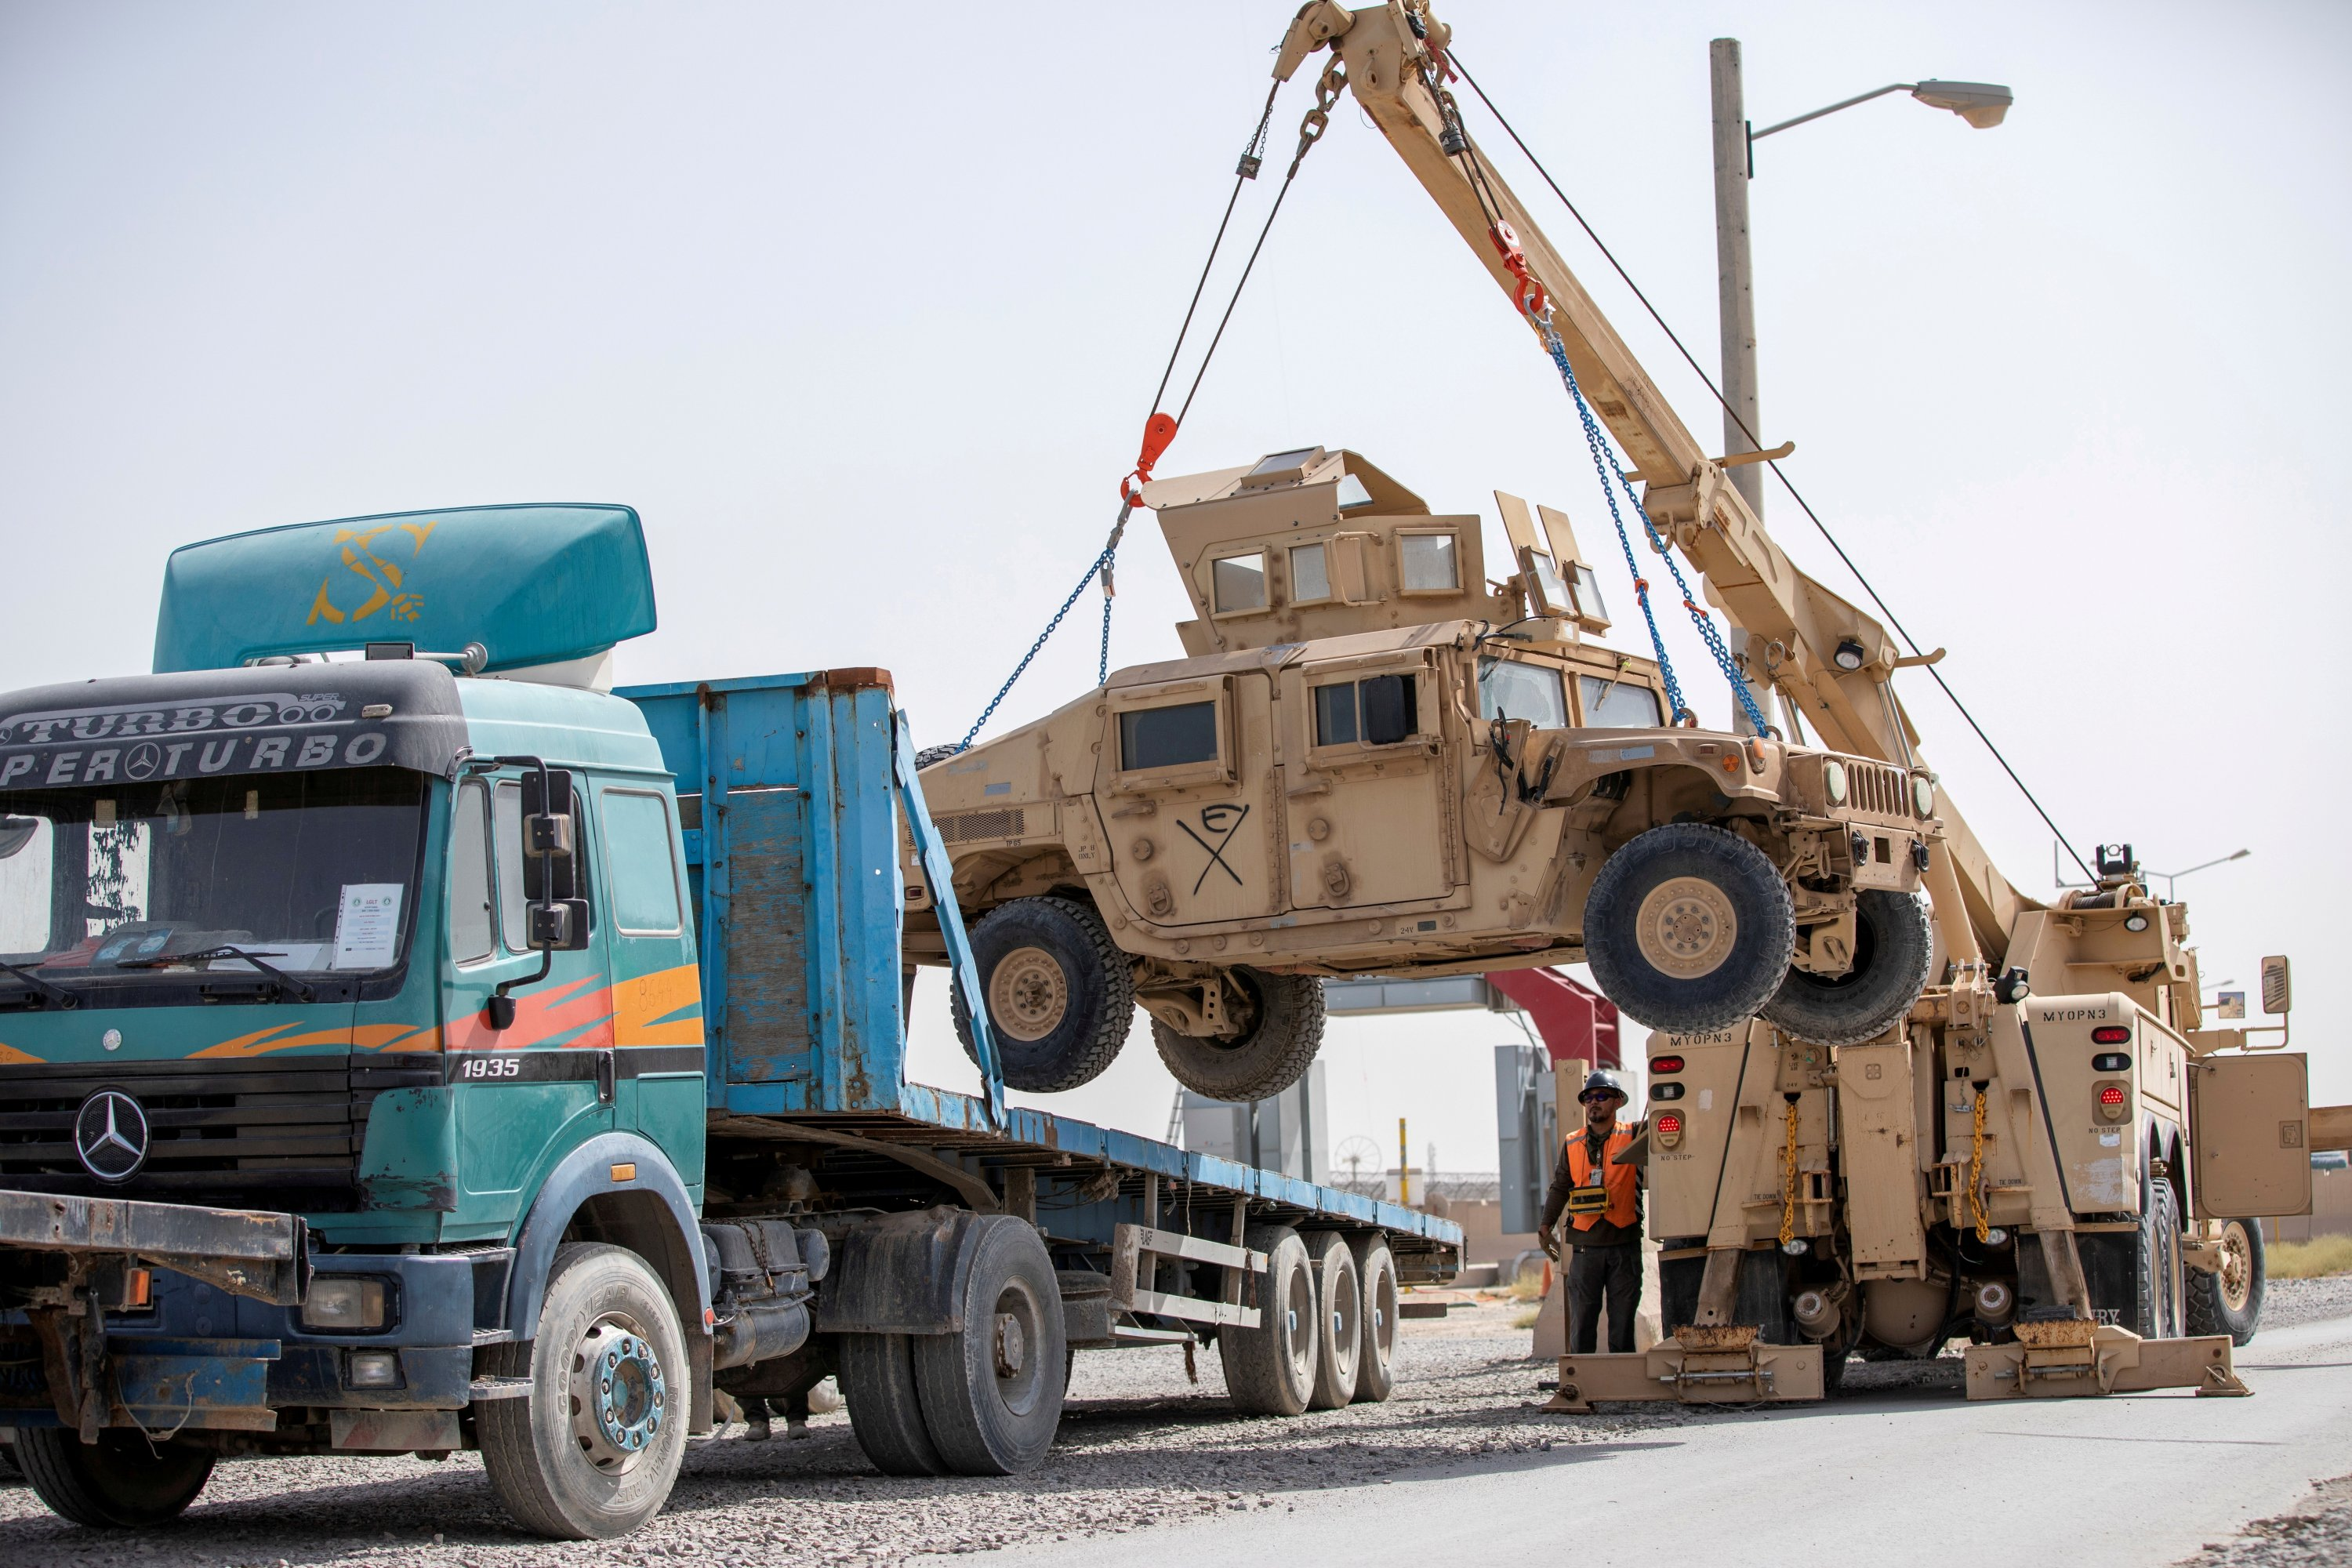 U.S. Army soldiers and contractors load High Mobility Multi-purpose Wheeled Vehicles, HUMVs, to be sent for transport as U.S. forces prepare for withdrawal, in Kandahar, Afghanistan, July 13, 2020. (U.S. Army/Sgt. Jeffery J. Harris/Handout via REUTERS)